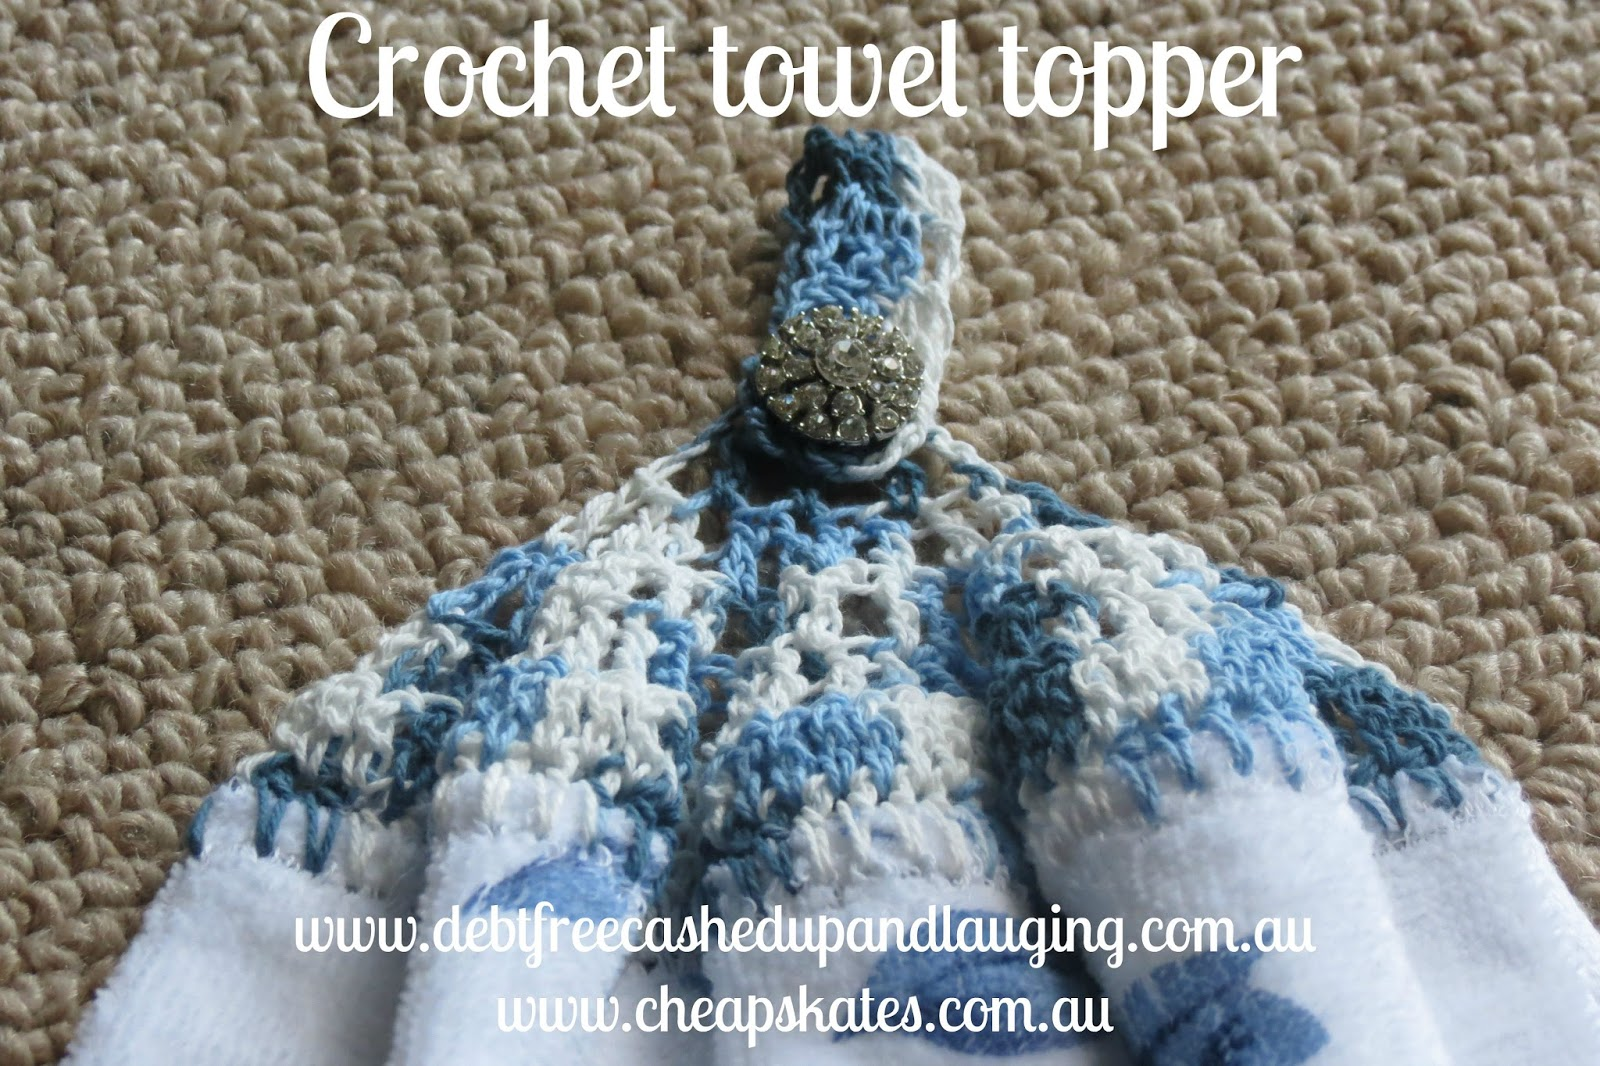 Free Crochet Pattern For Hand Towel Topper : Debt Free, Cashed Up and Laughing - The Cheapskates way to ...